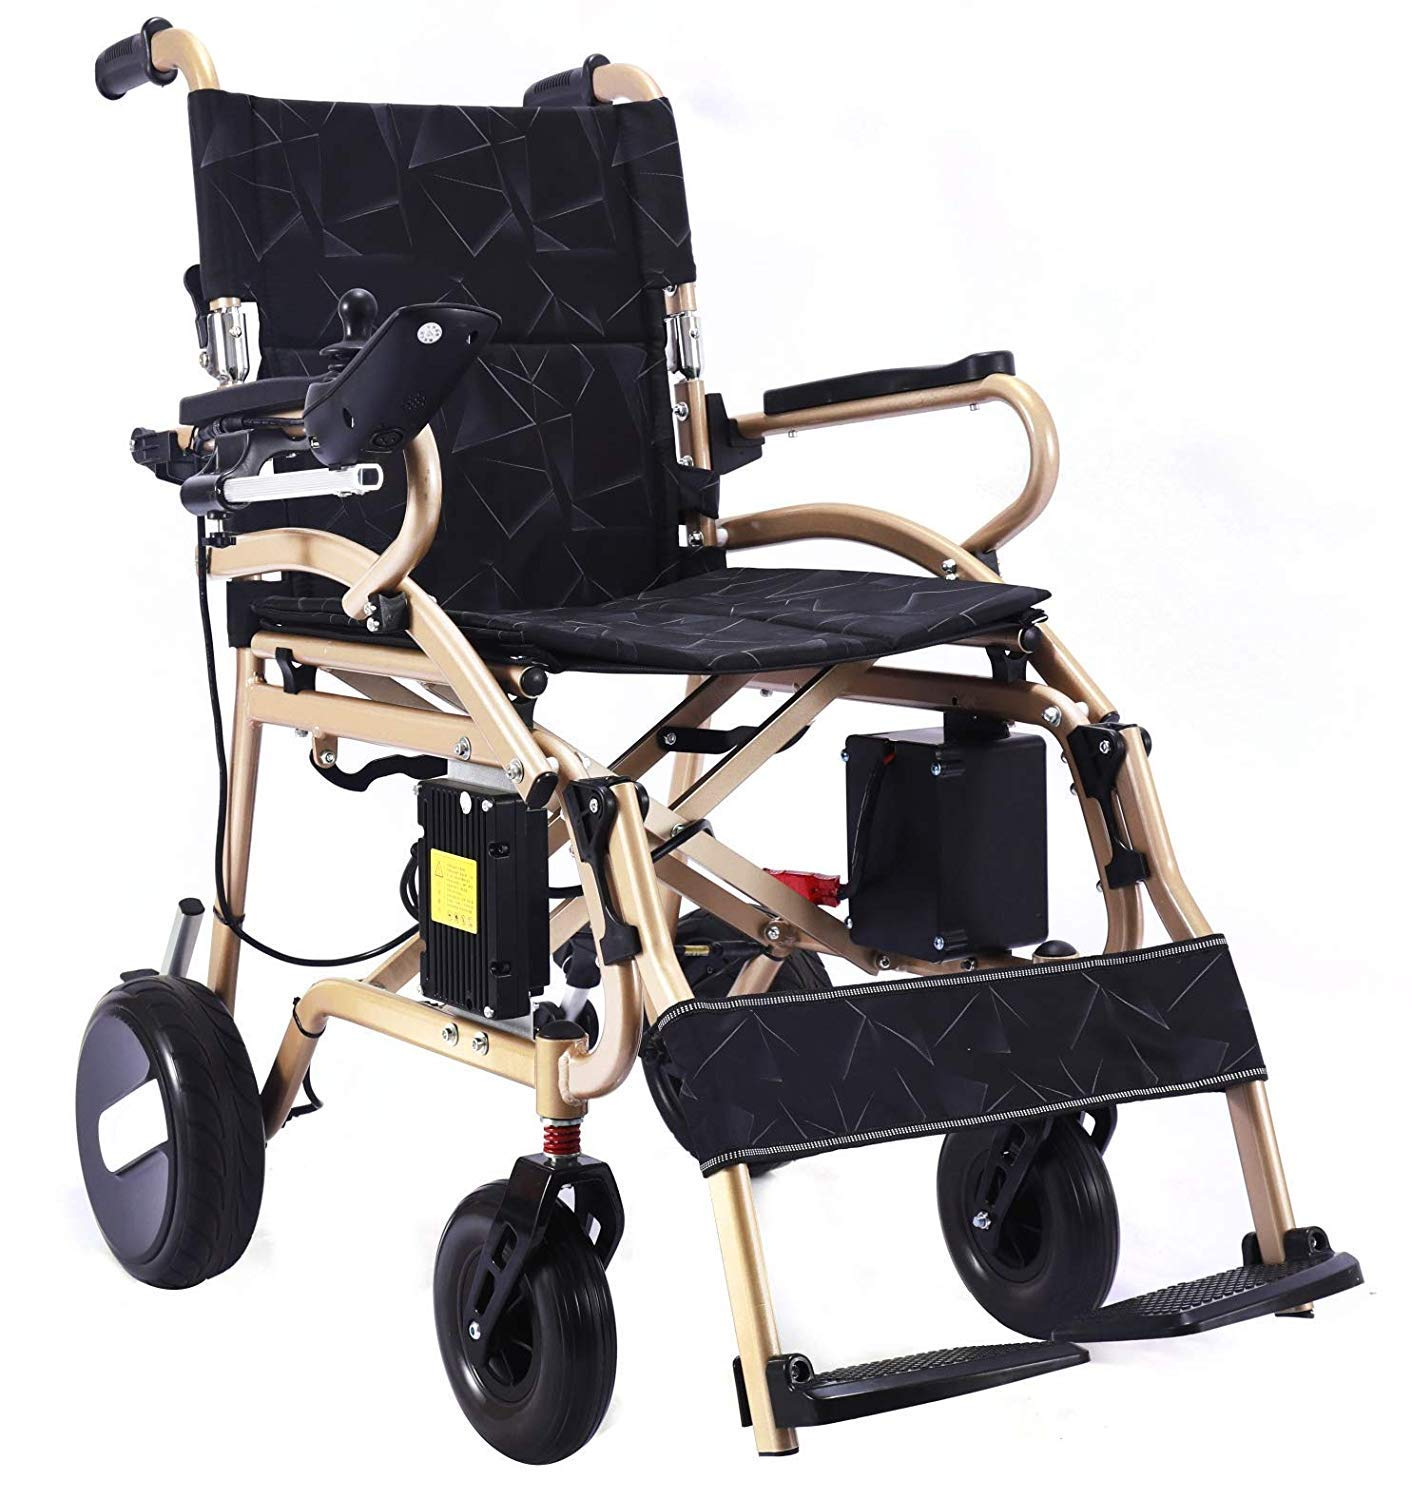 Folding Ultra Lightweight 40 lb w/Powerful Lithium Battery Included, Easy to Carry Motorized Wheelchair w/ 360° Joystick Control, Airline Travel Compatible Electric Wheel Chairs (Gold Weight 40lb) by Bangeran